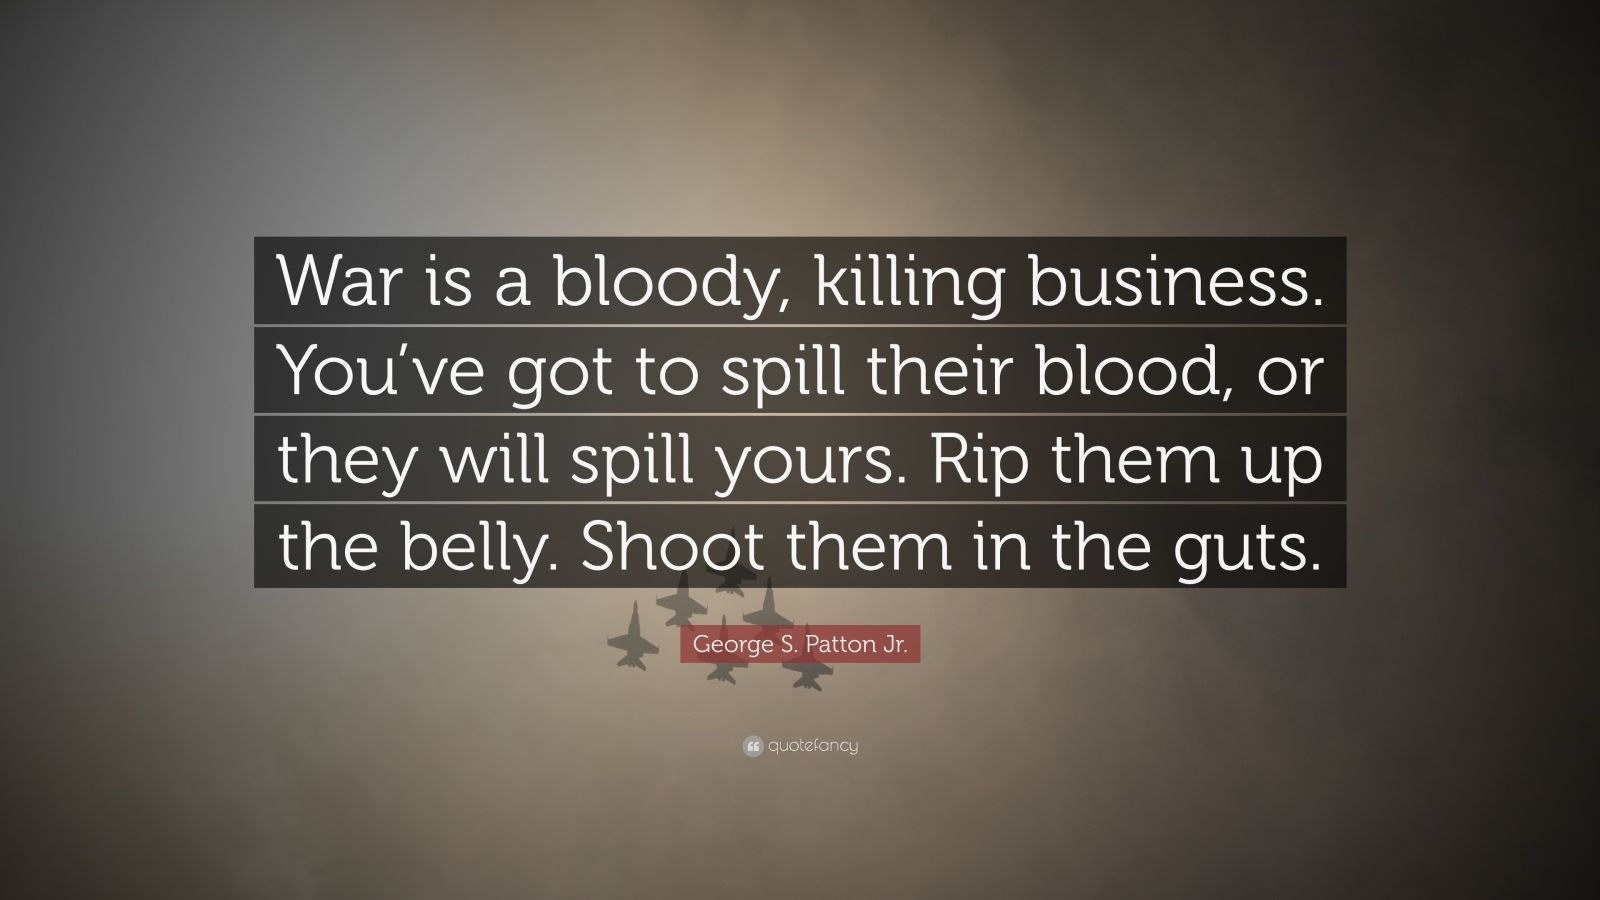 """George S. Patton Jr. Quote: """"War is a bloody, killing business. You've got to spill their blood, or they will spill yours. Rip them up the belly. Shoot them in the guts."""""""